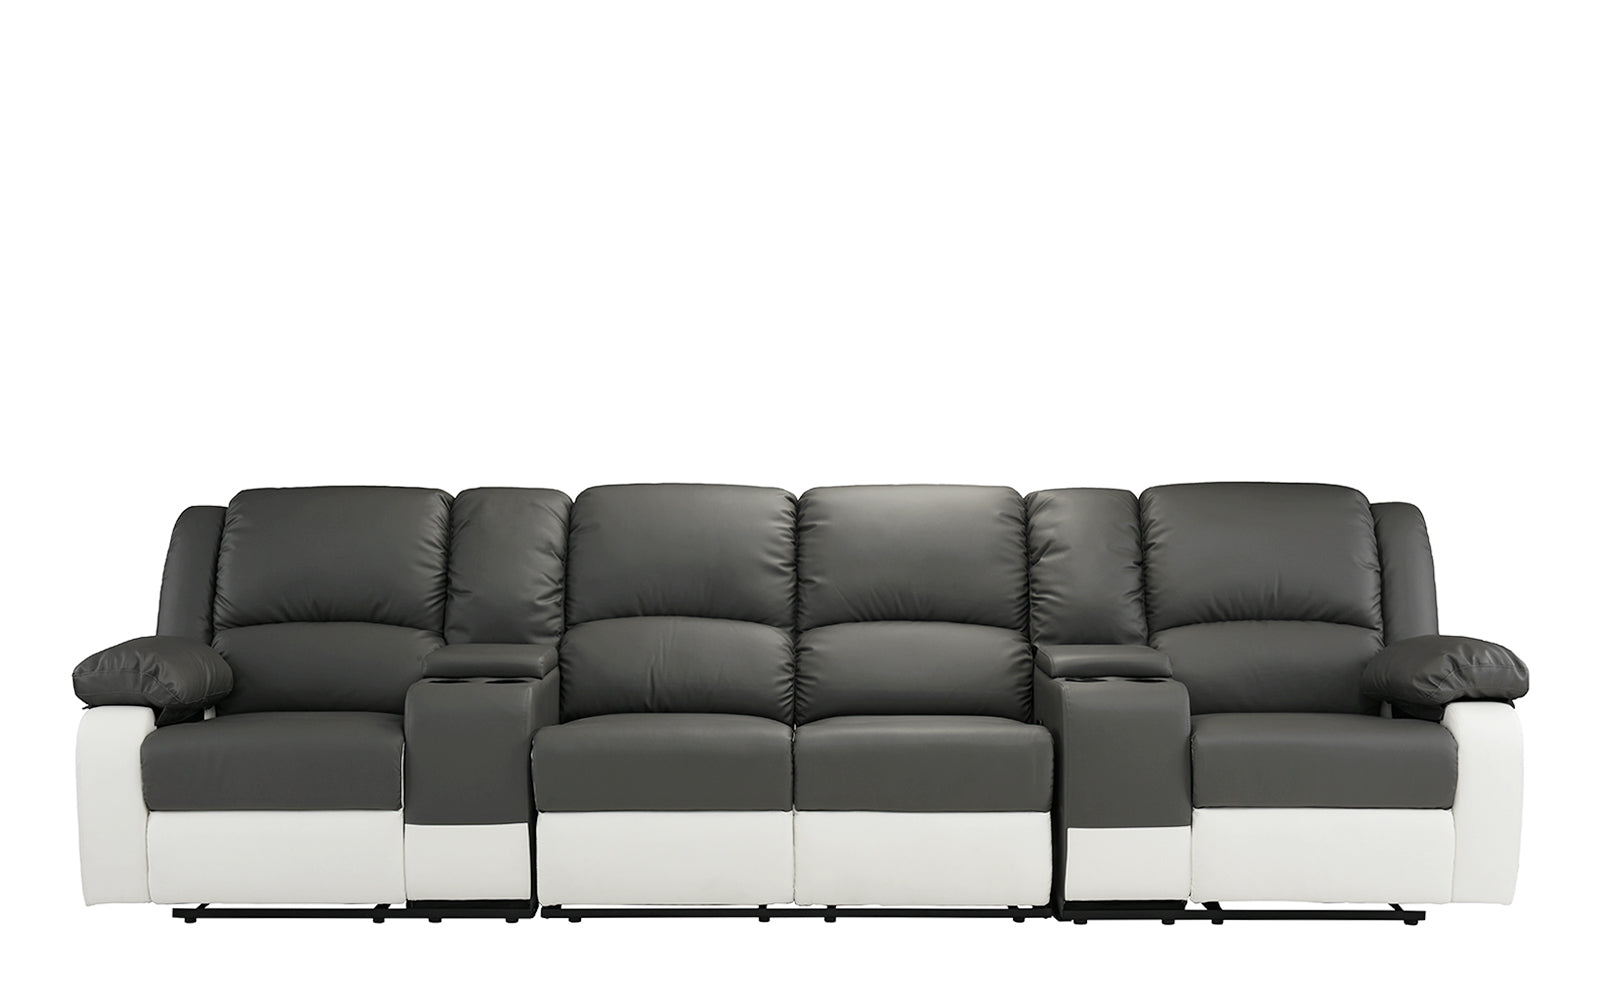 Home Theatre Seater Recliner Sofa Image